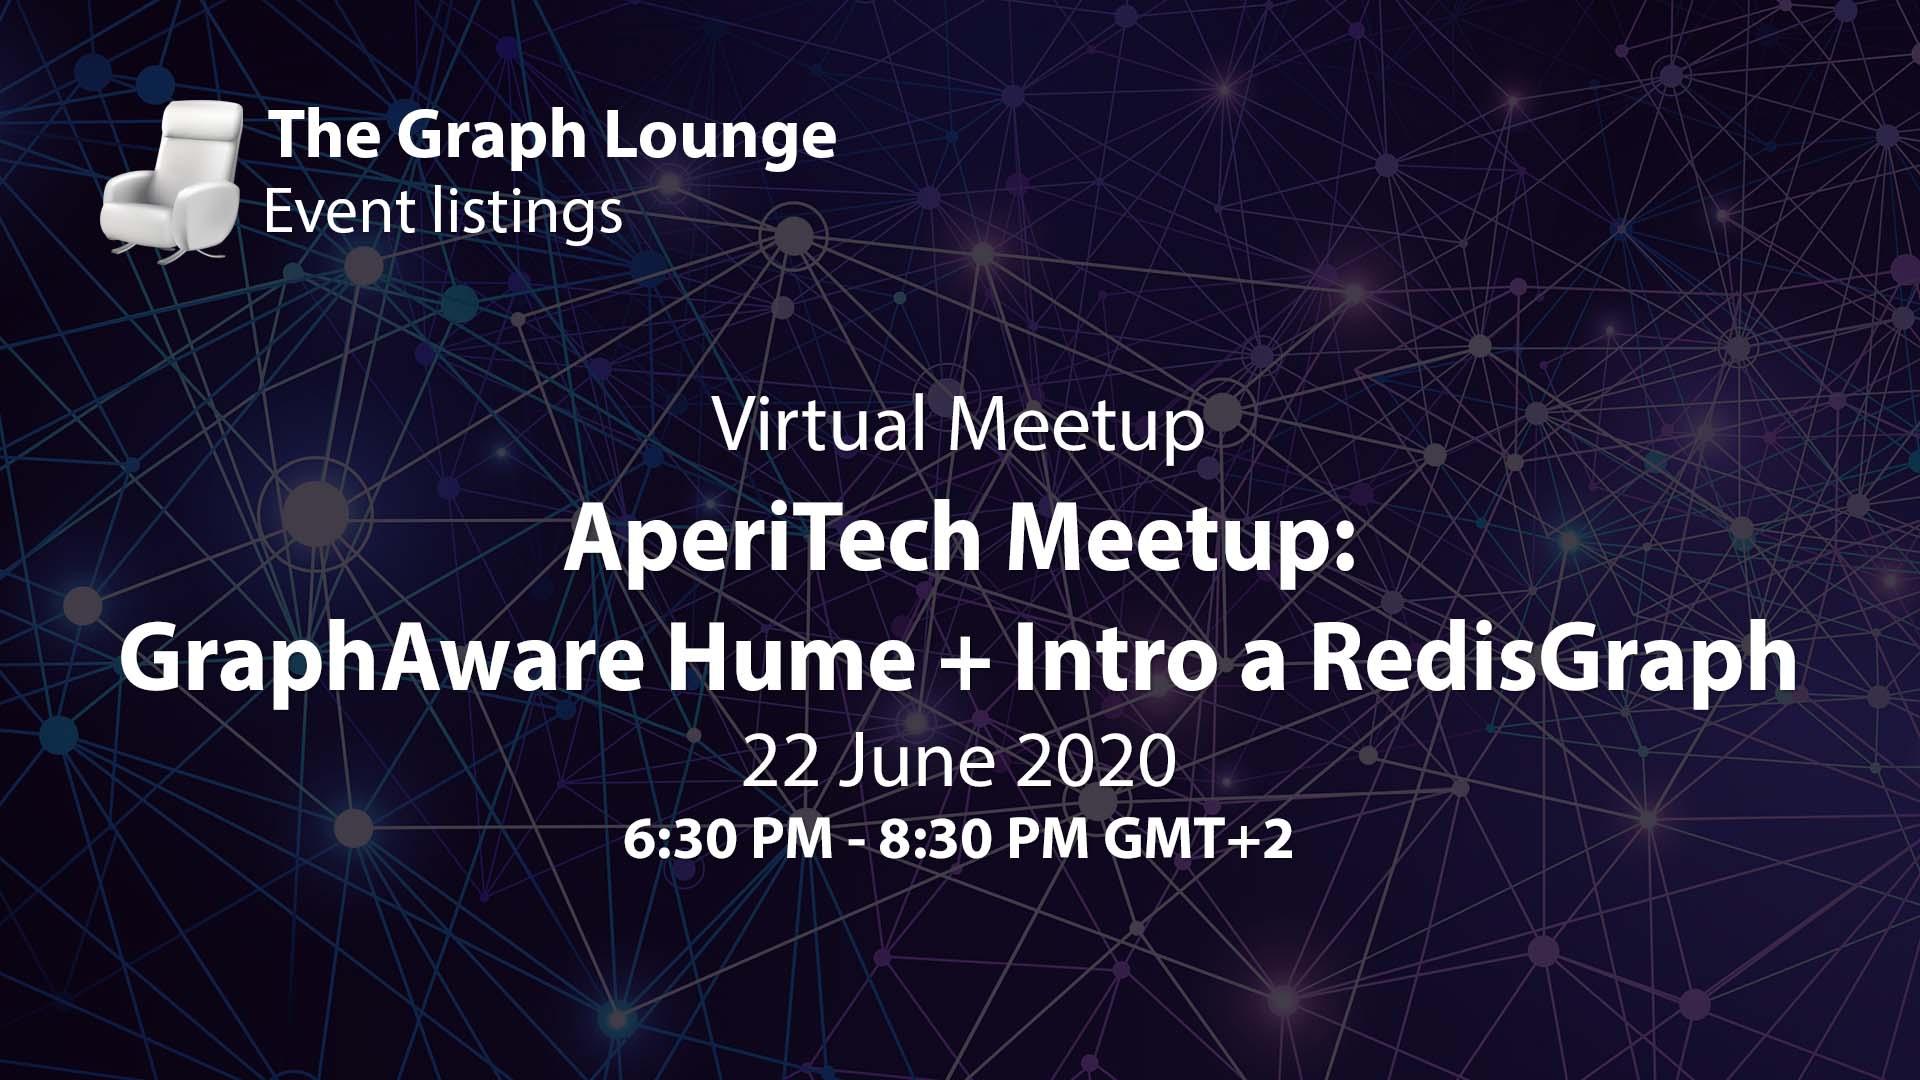 AperiTech Meetup: GraphAware Hume + Intro a RedisGraph